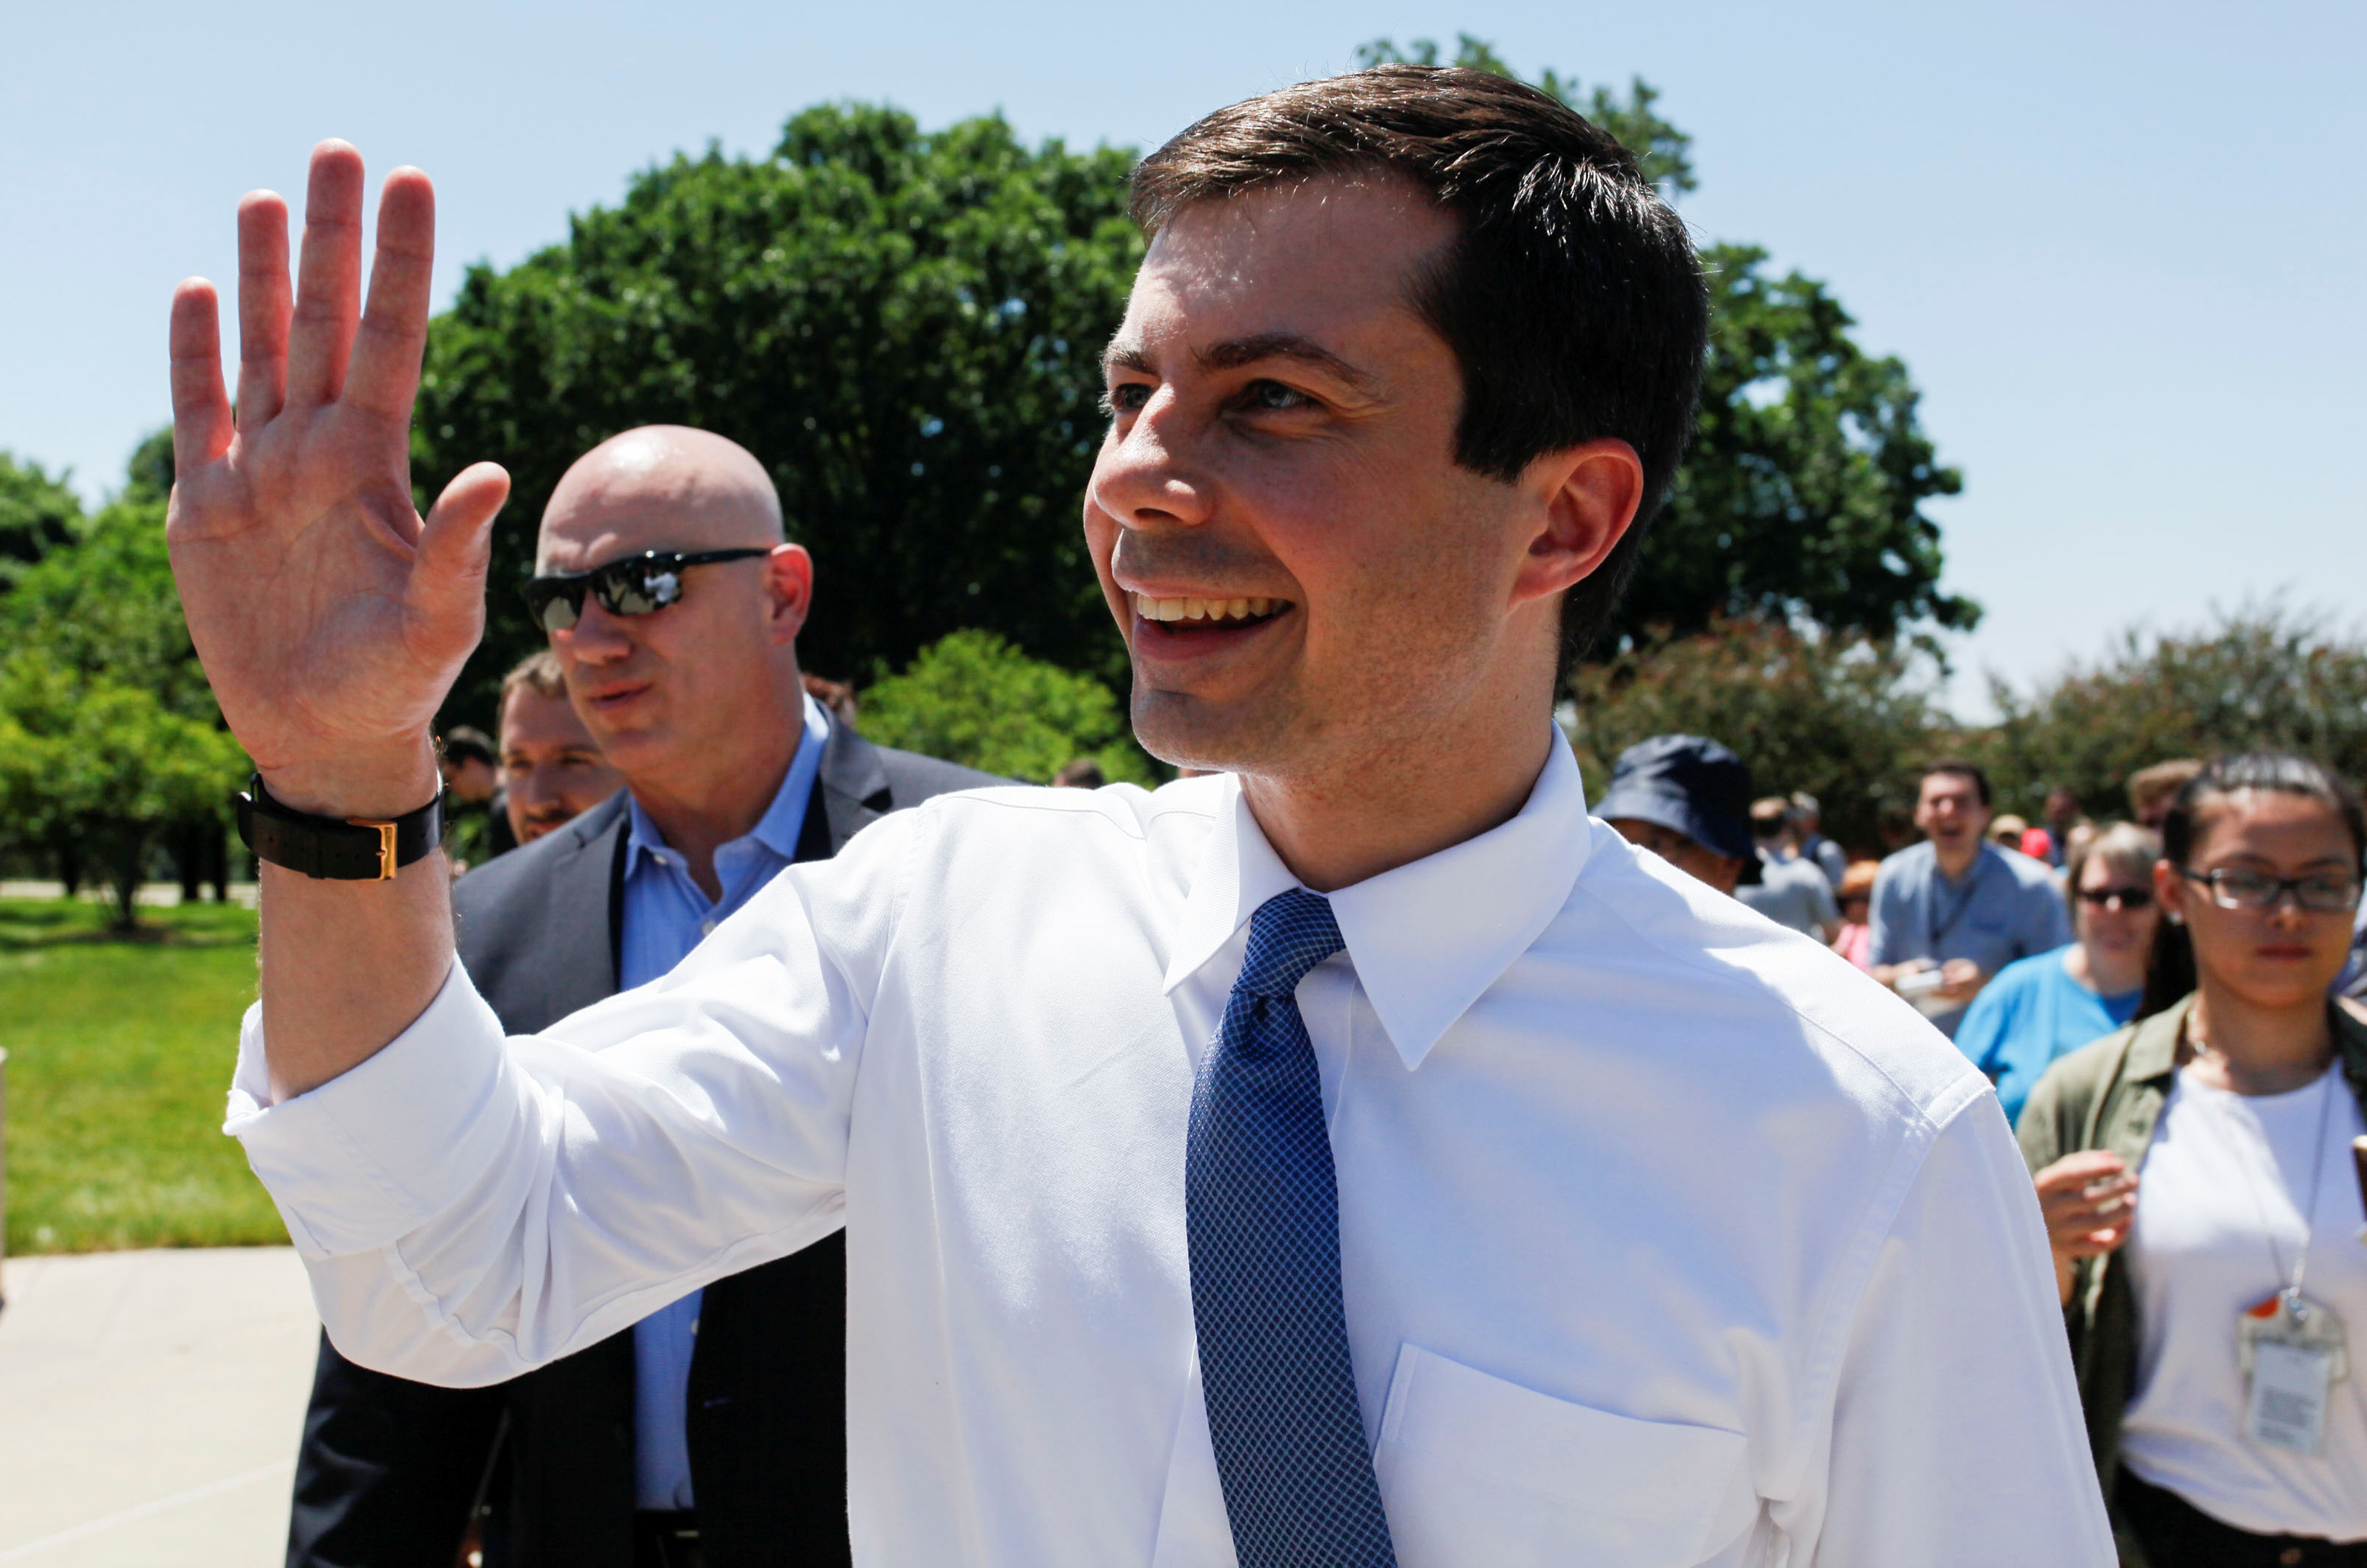 FILE - Democratic 2020 U.S. presidential candidate Mayor Pete Buttigieg, who is gay and married to a man, arrives to the Capital Pride LGBTQ celebration at the Iowa State Capitol in Des Moines, Iowa, June 8, 2019.